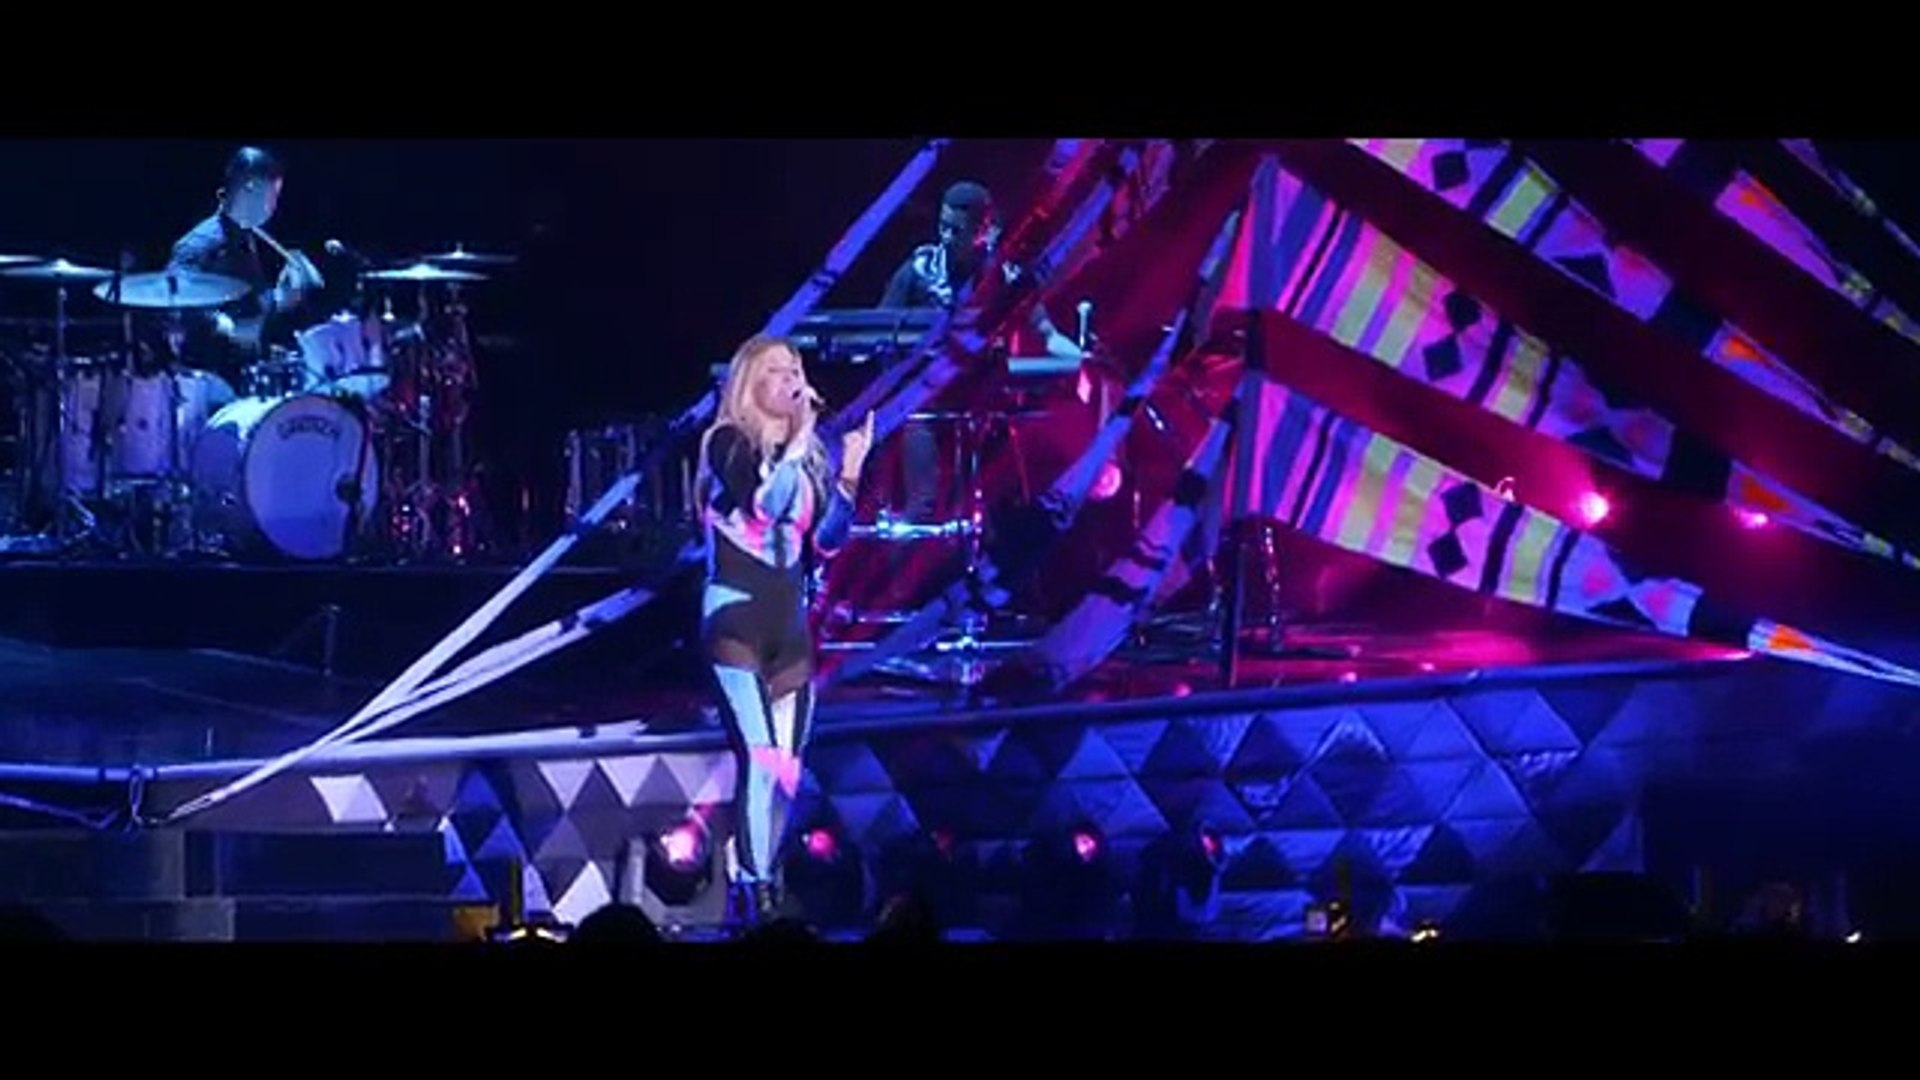 Ellie Goulding - Don't Need Nobody (Vevo Presents- Live in London)